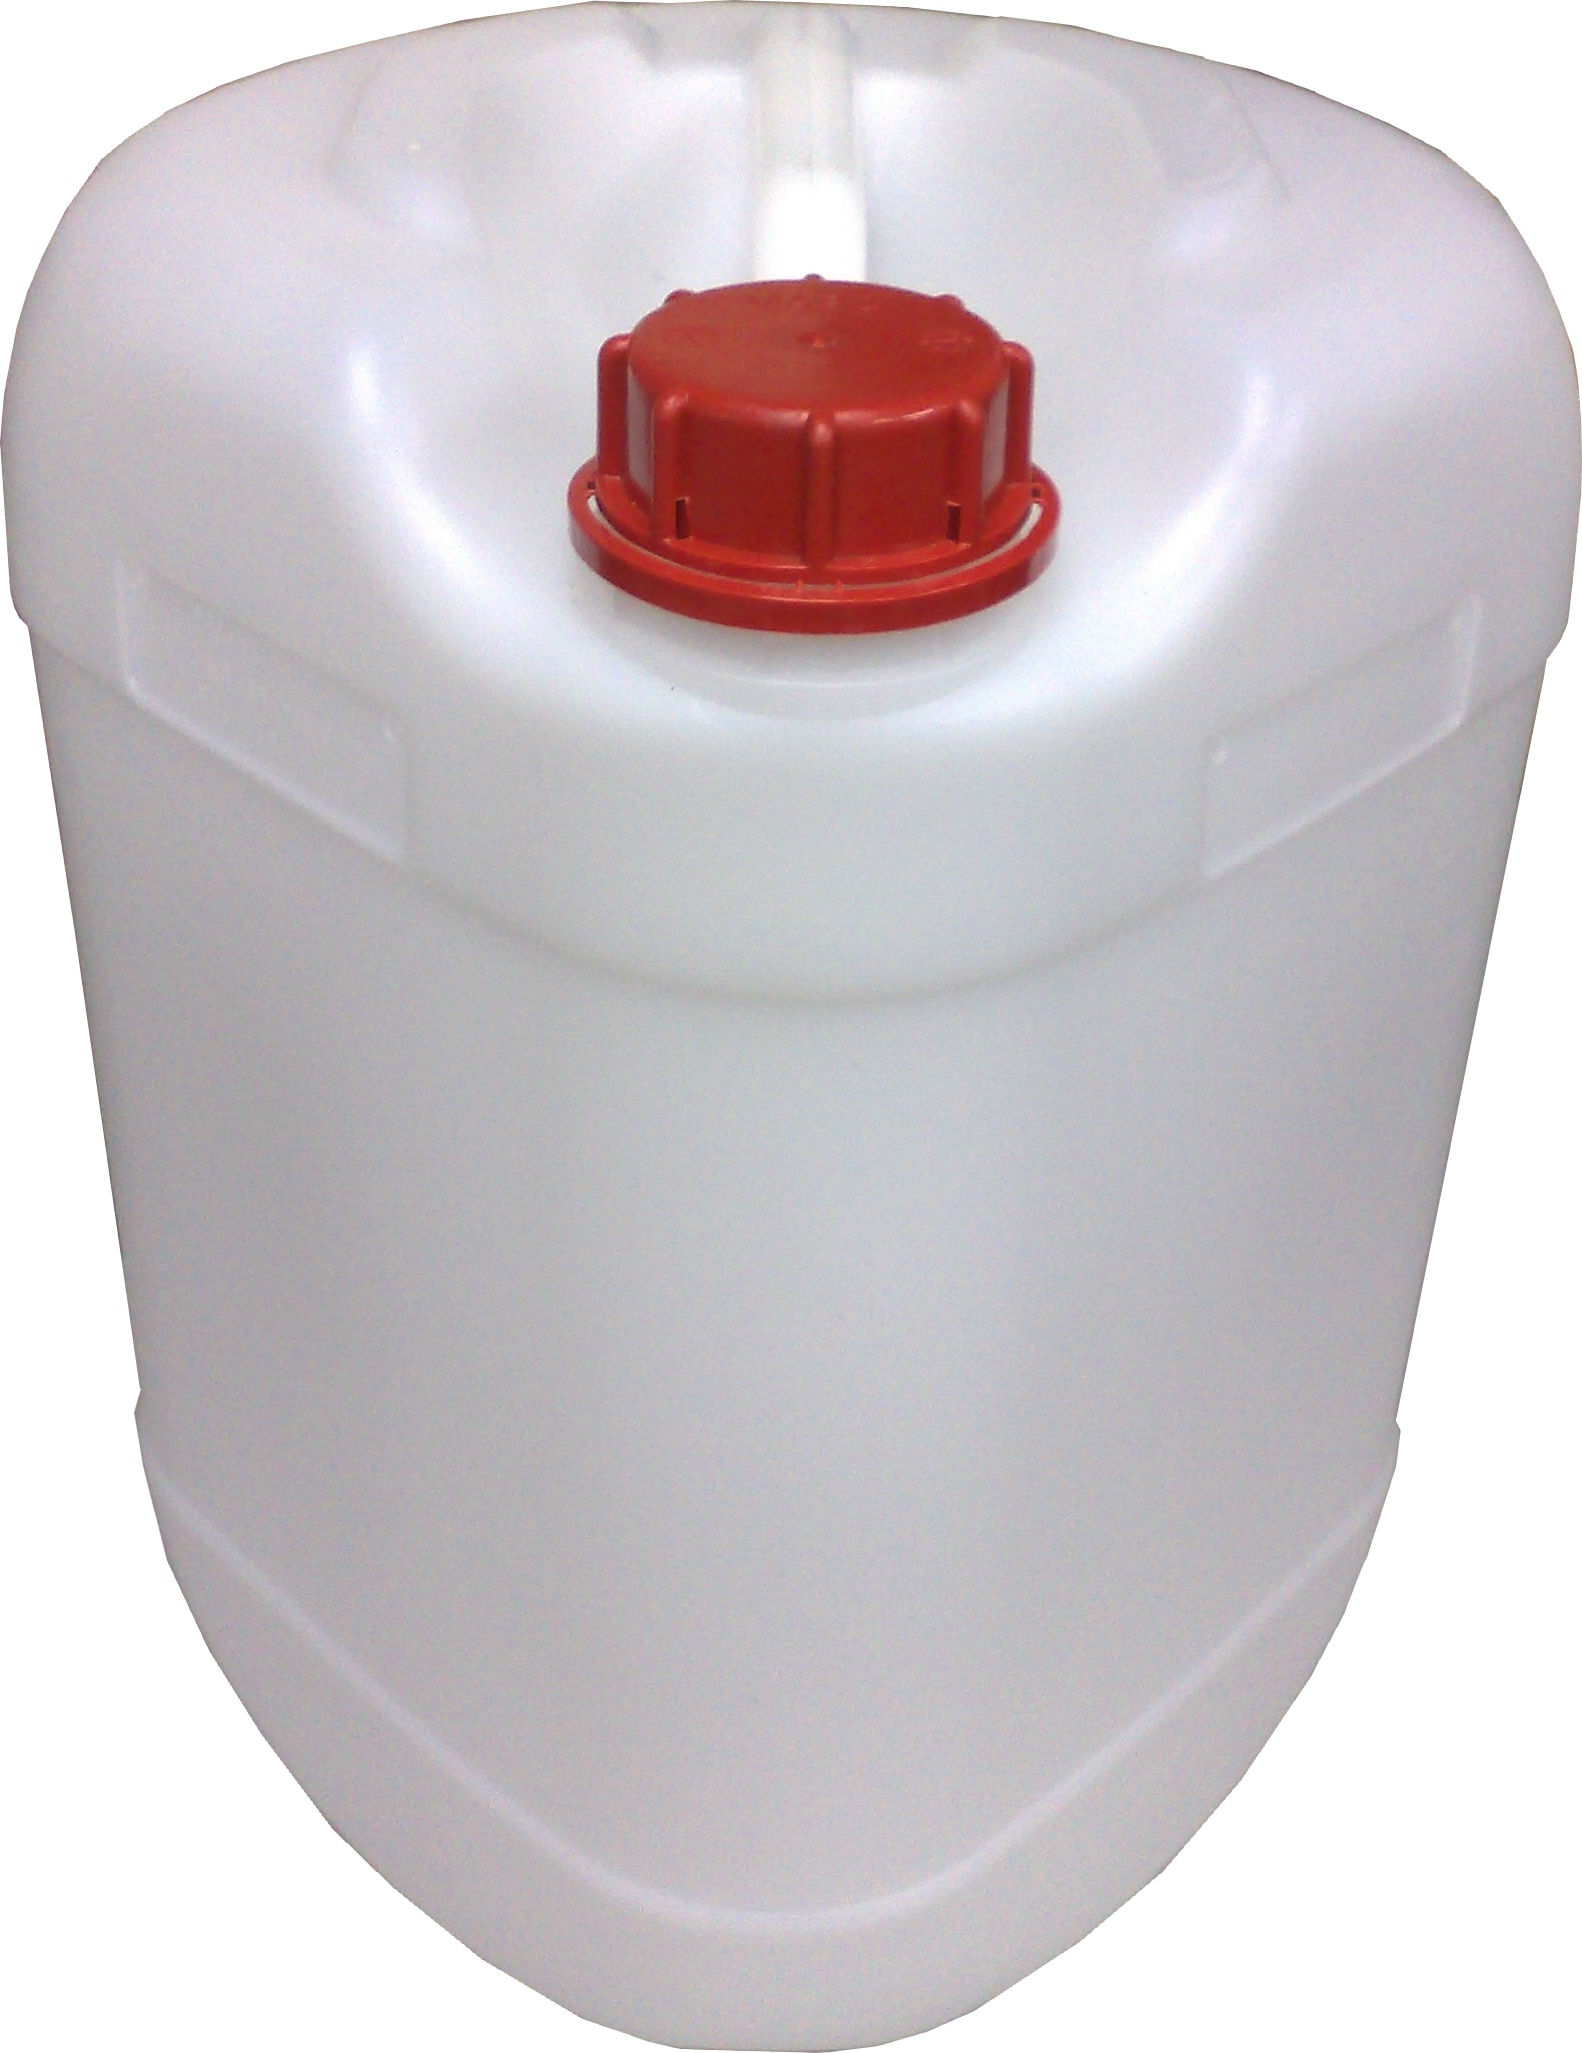 25-LITRES HIGH DENSITY POLYETHYLENE (HDPE) JERRICAN